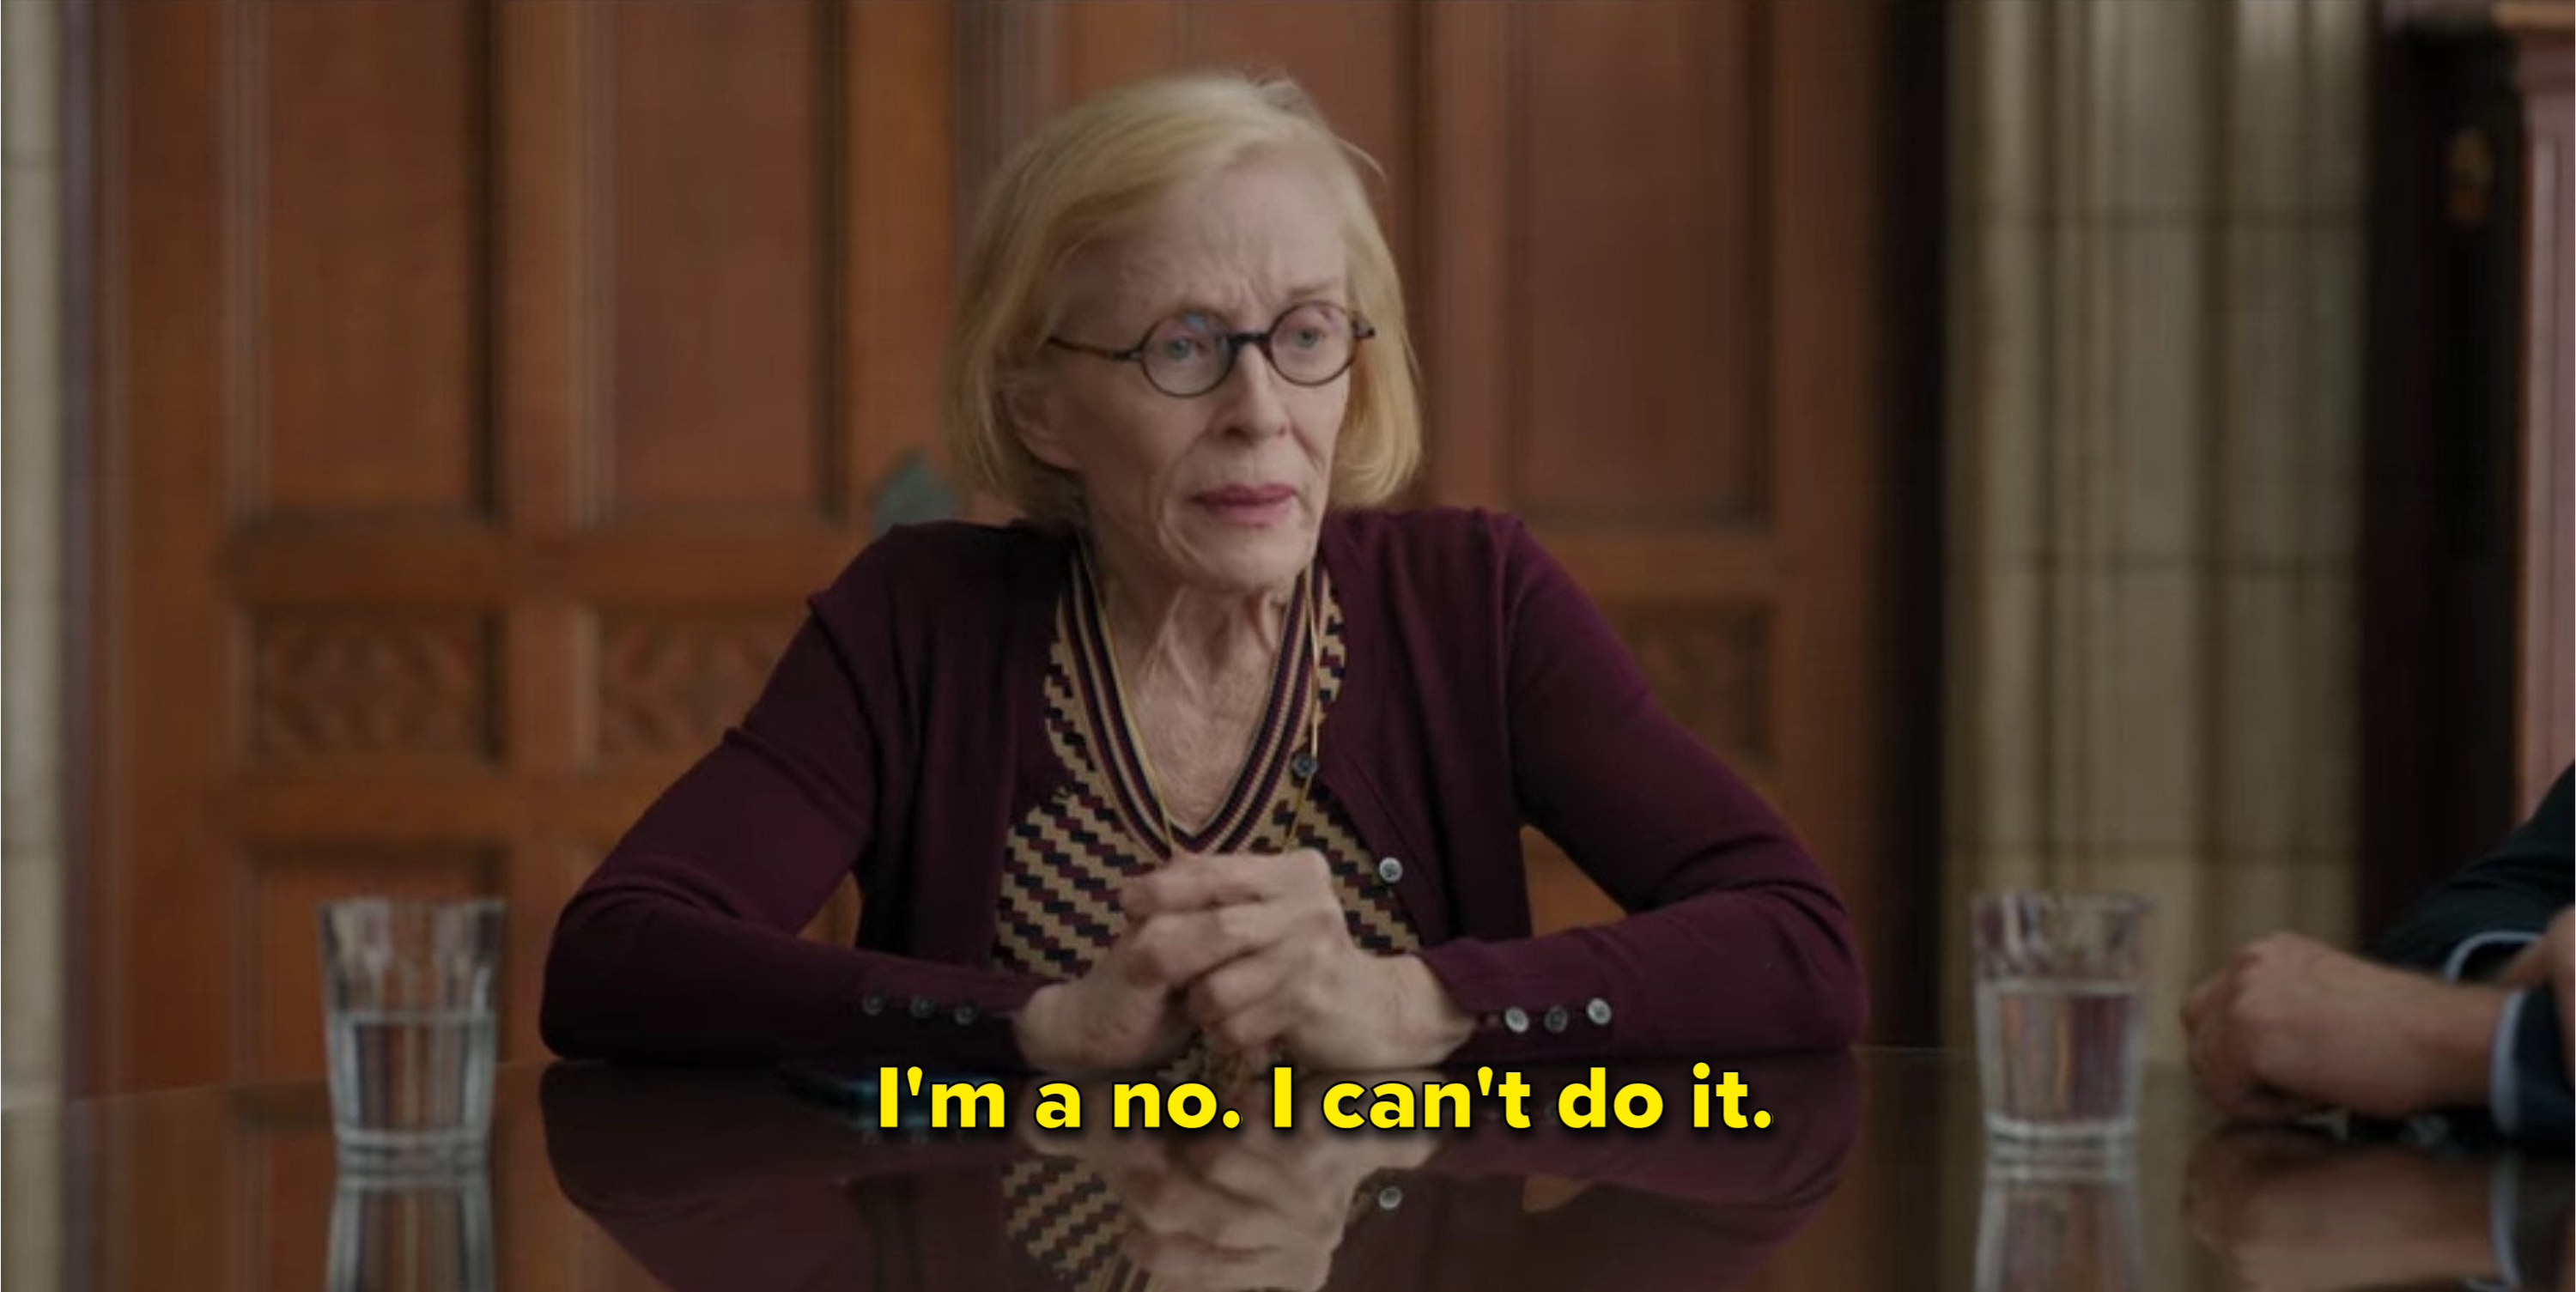 Joan says she can't do it